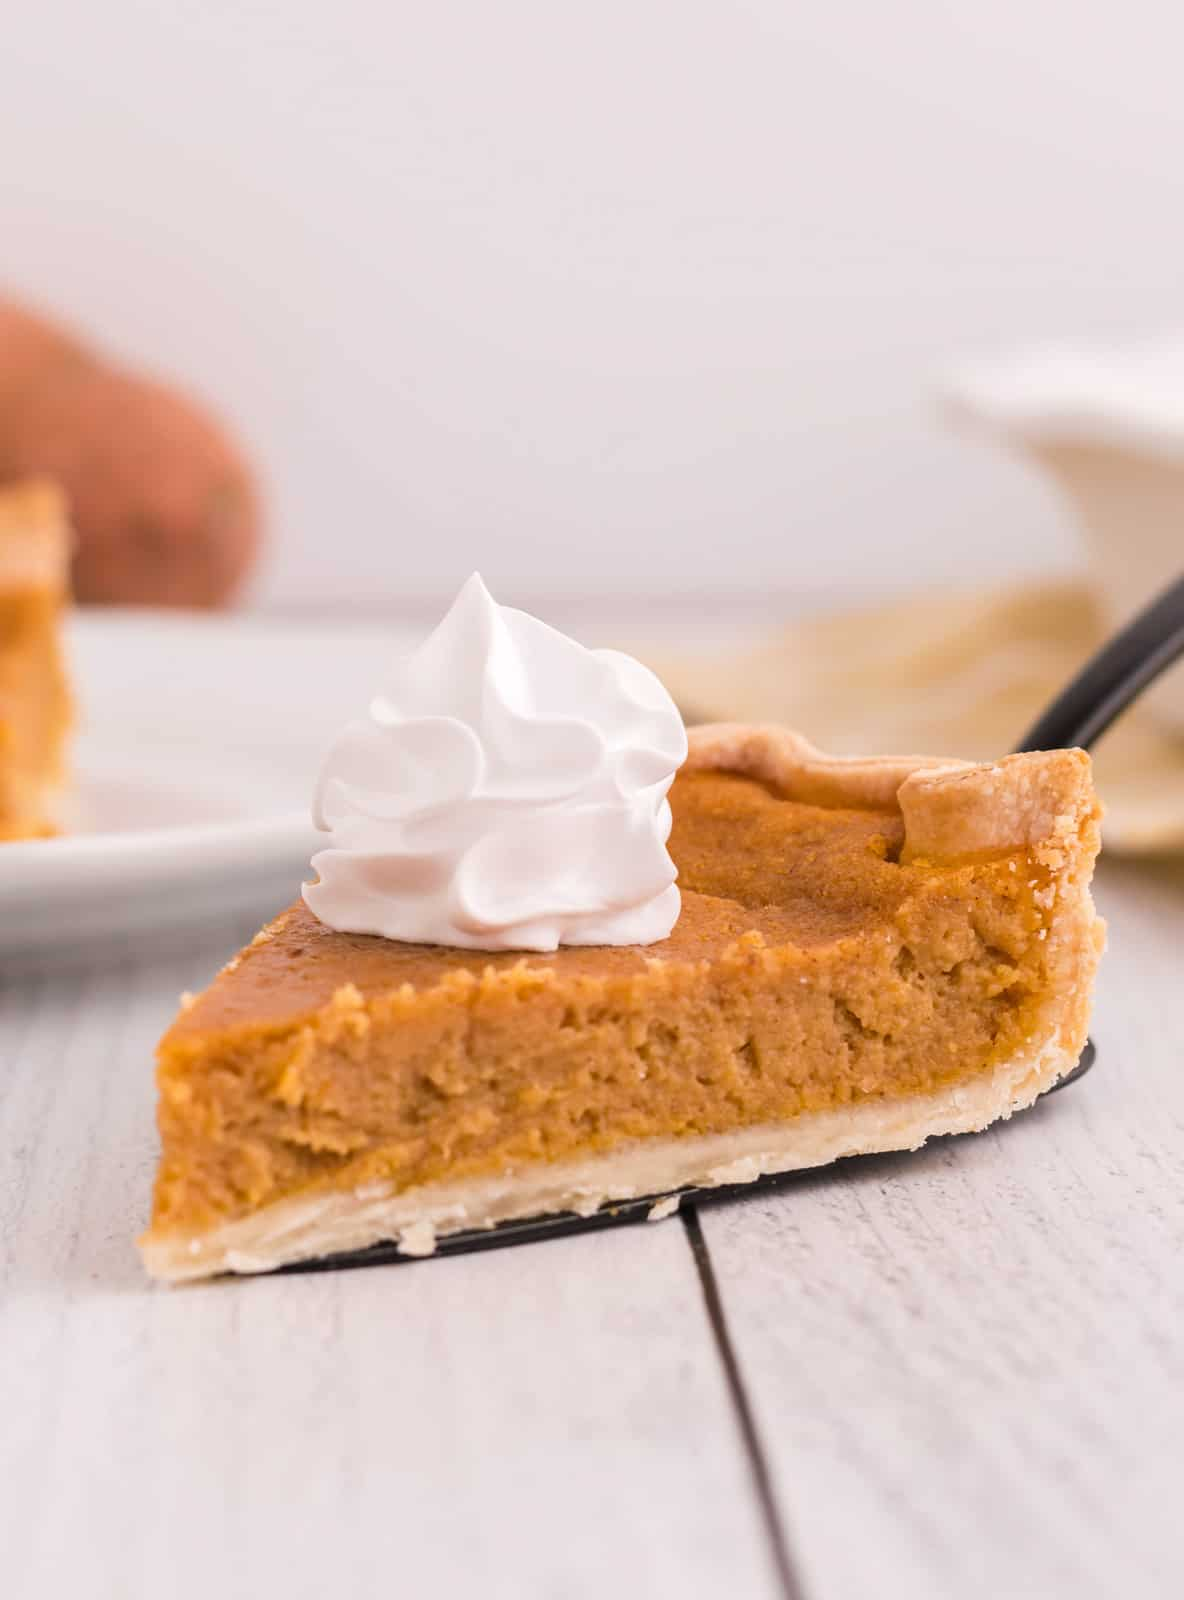 Slice of pie with dollop of whipped cream on pie server